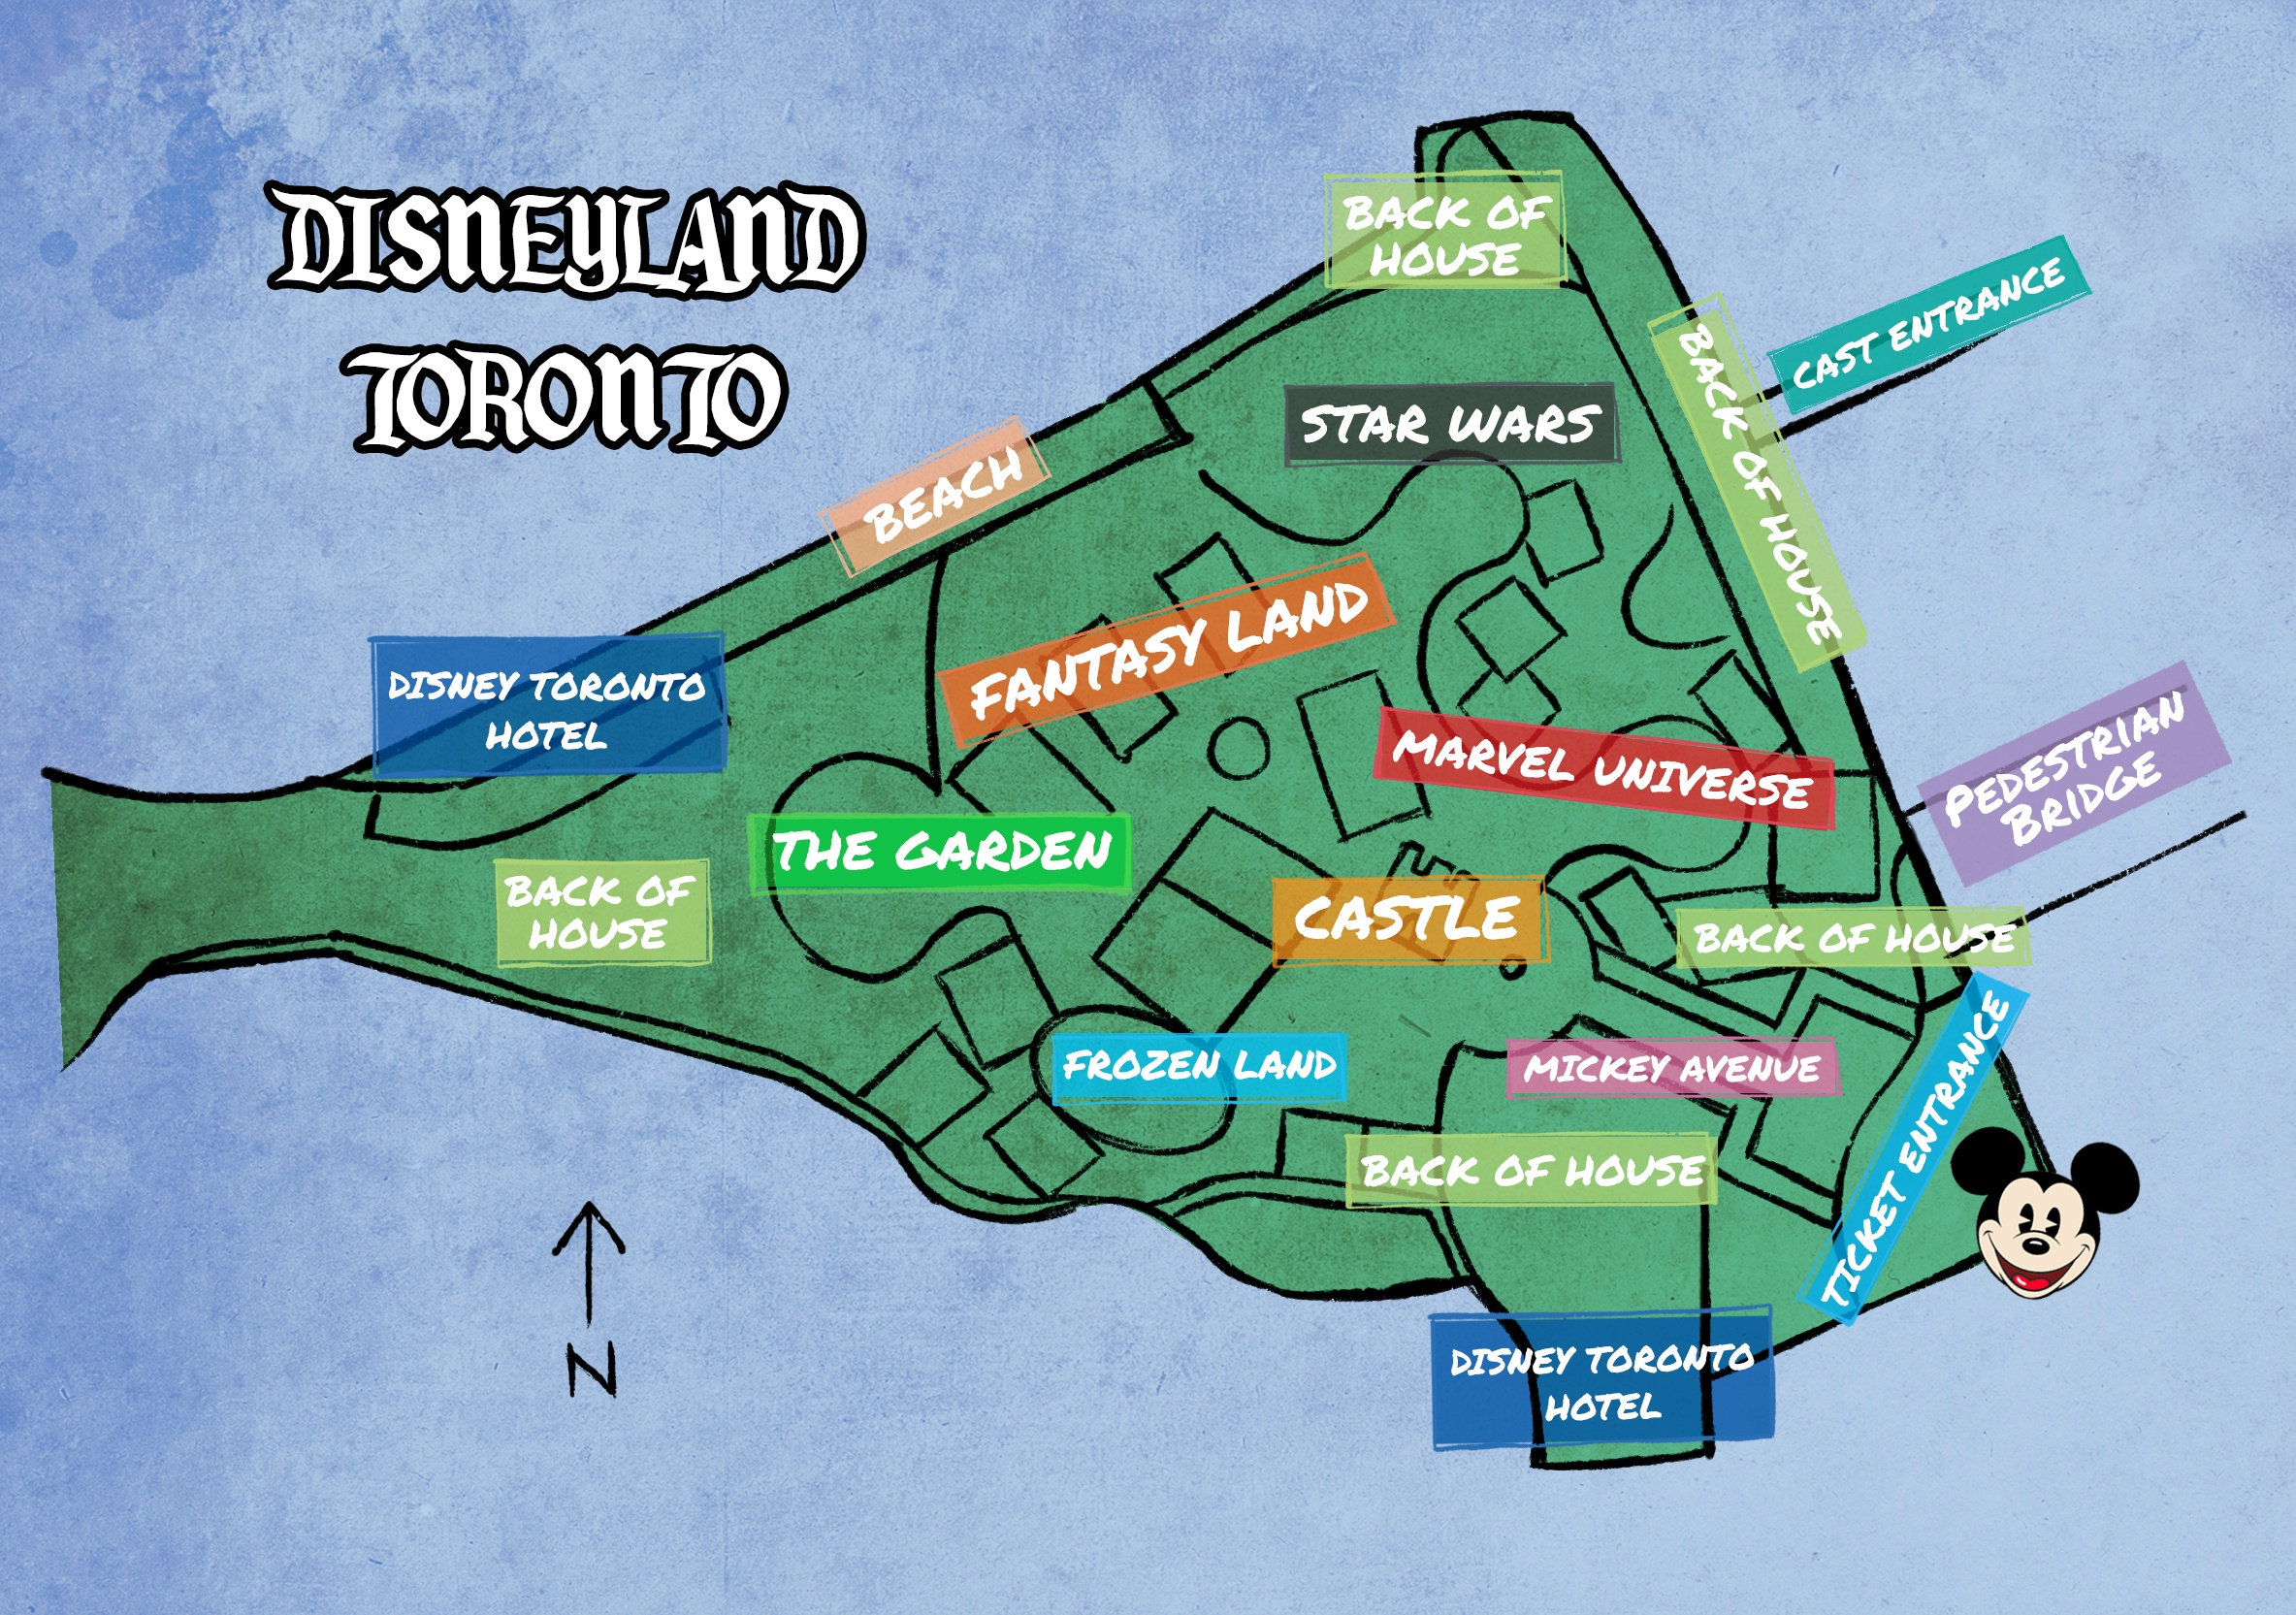 Map Of Canadas Wonderland 2017.Disney Announces Massive 6 5 Billion Disneyland Resort For Toronto